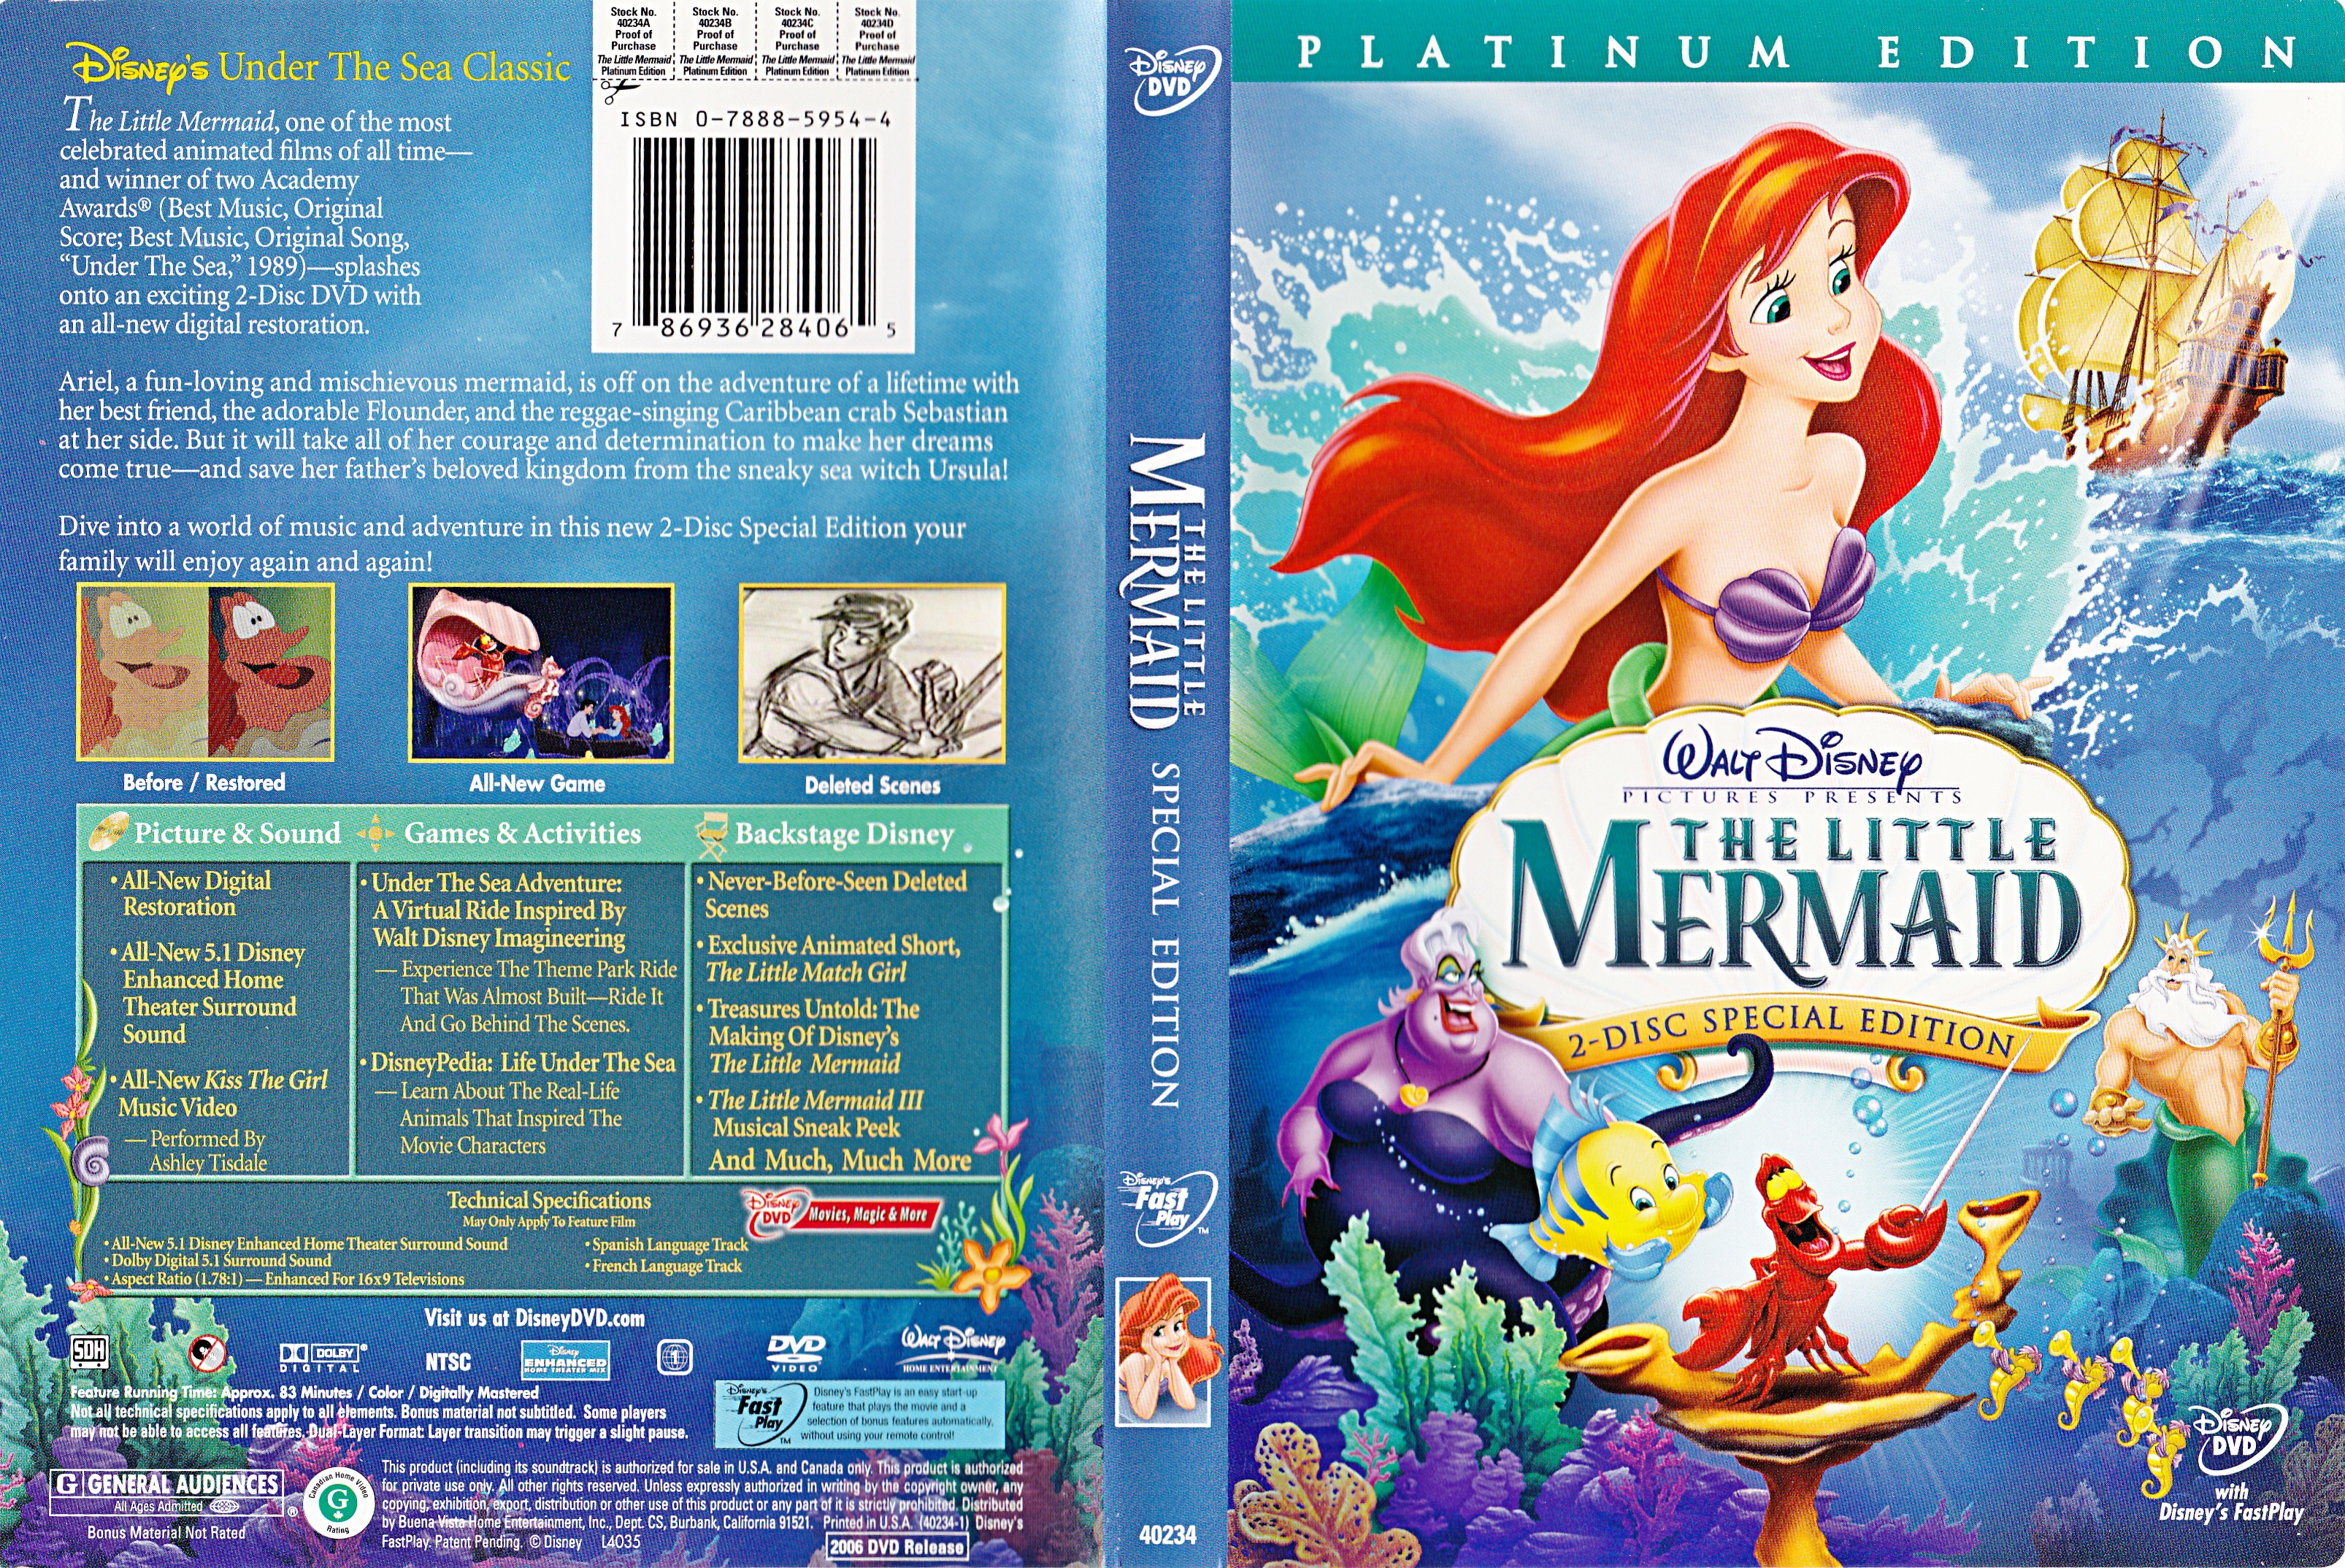 Walt disney DVD Covers - The Little Mermaid: Platinum Edition